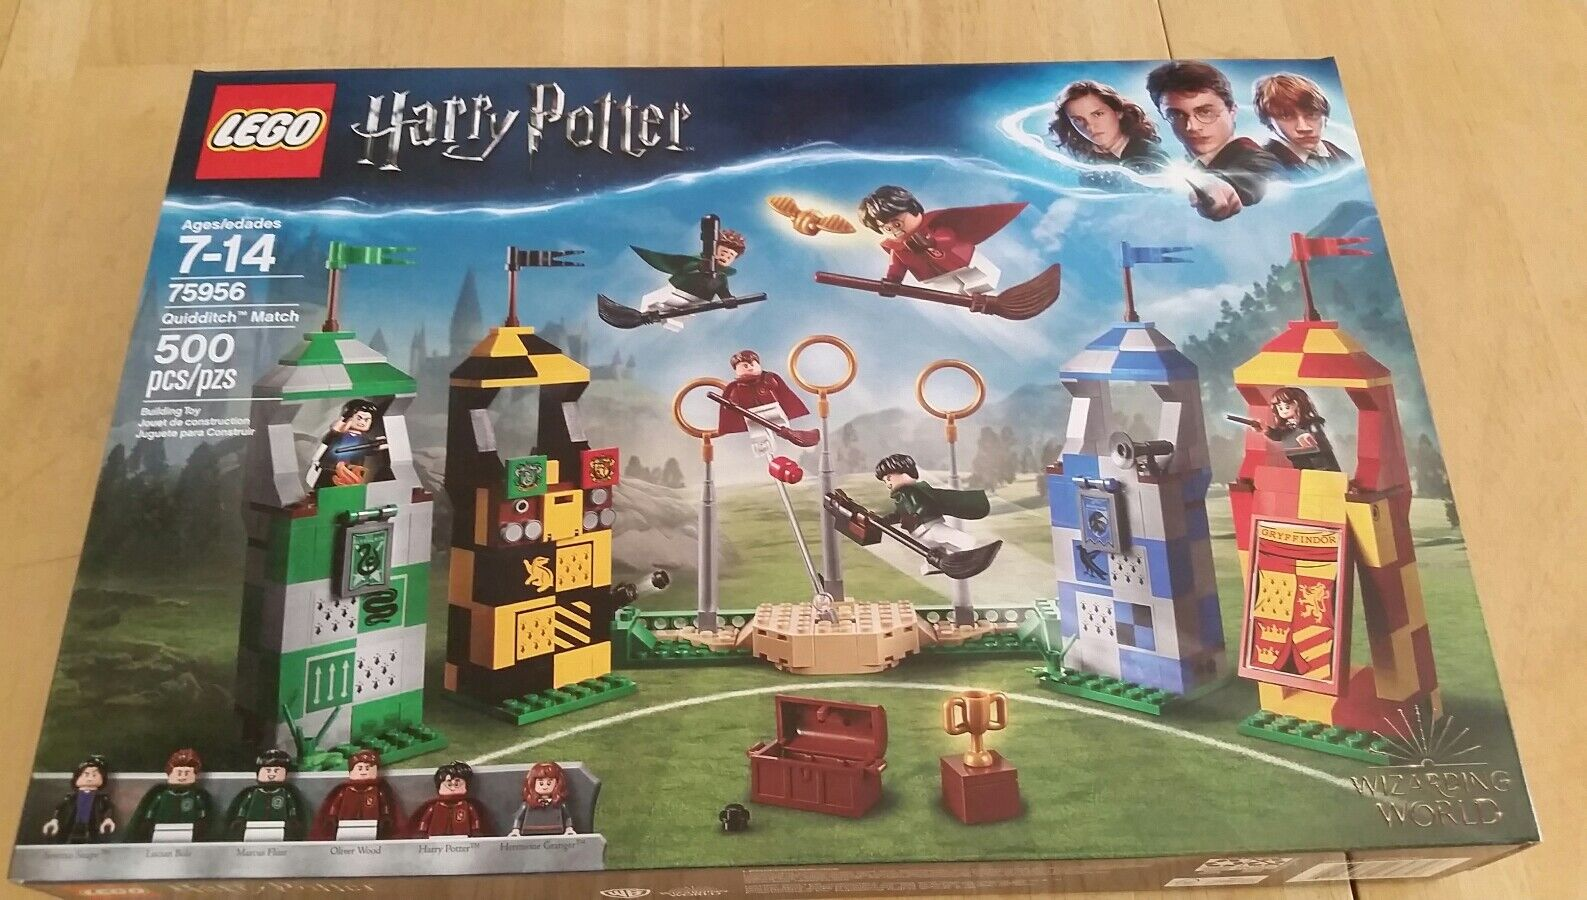 NEW NIB LEGO Harry Potter 75956 Quidditch Match NISB Factory Sealed In Hand